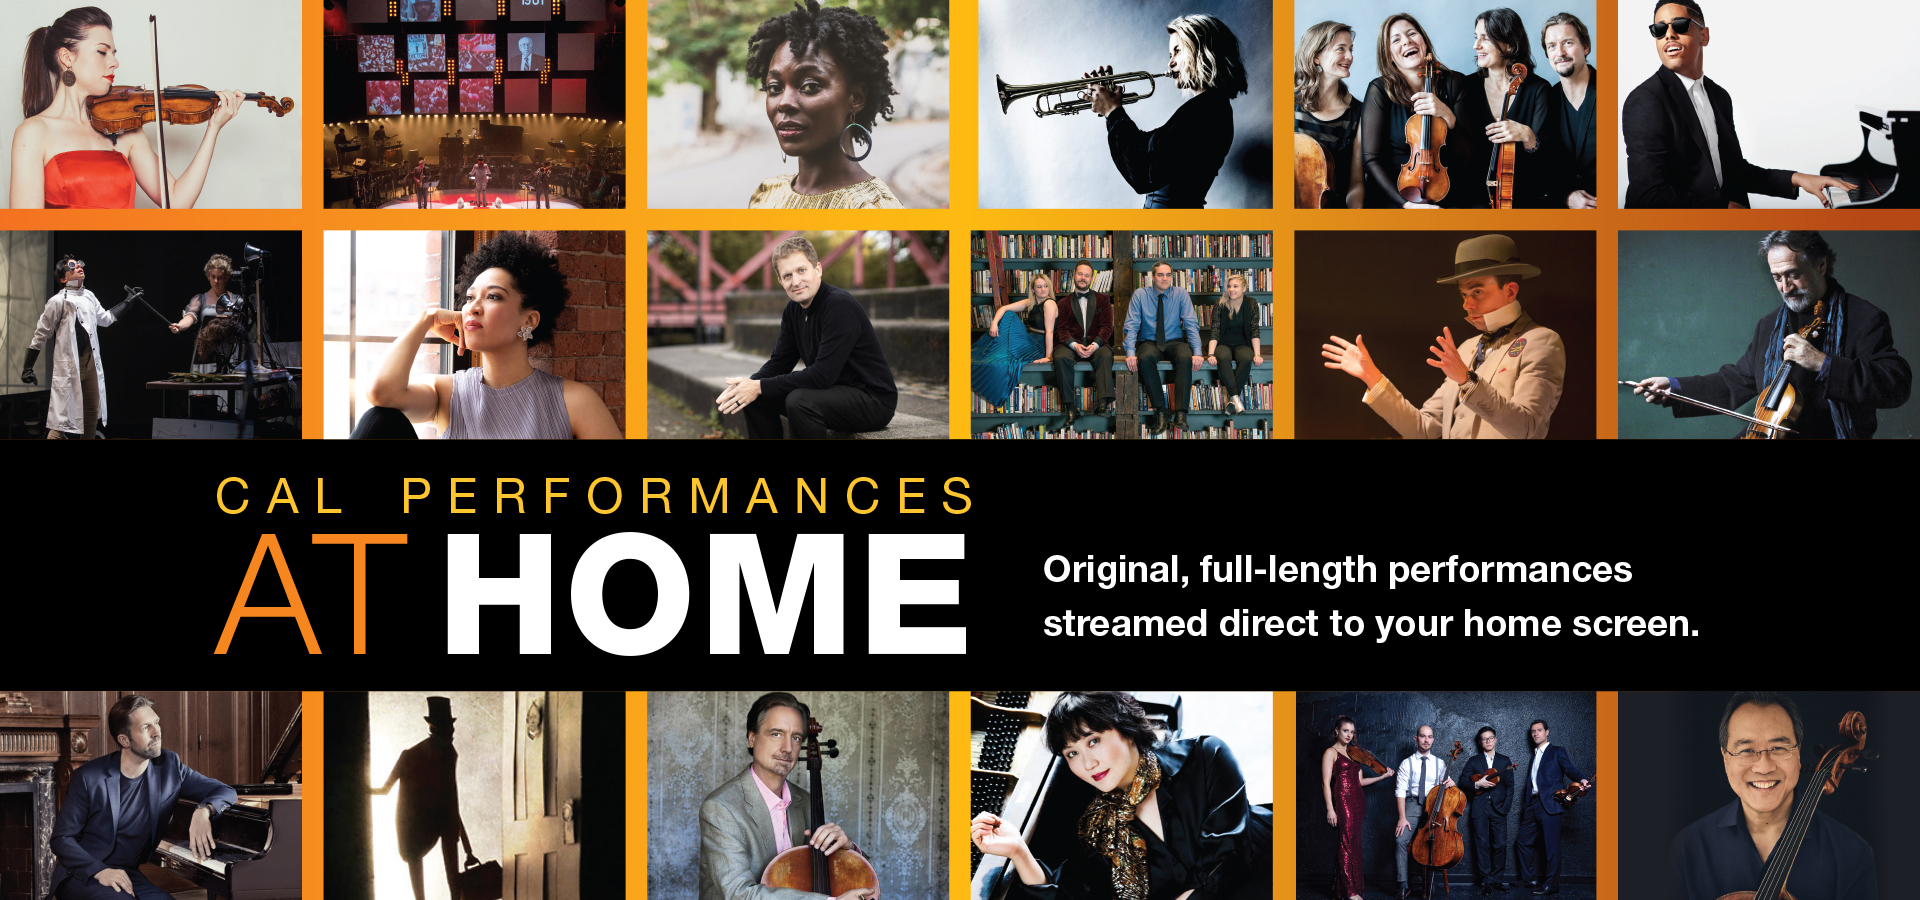 Cal Performances at Home: Original, full-length performances streamed direct to your home screen